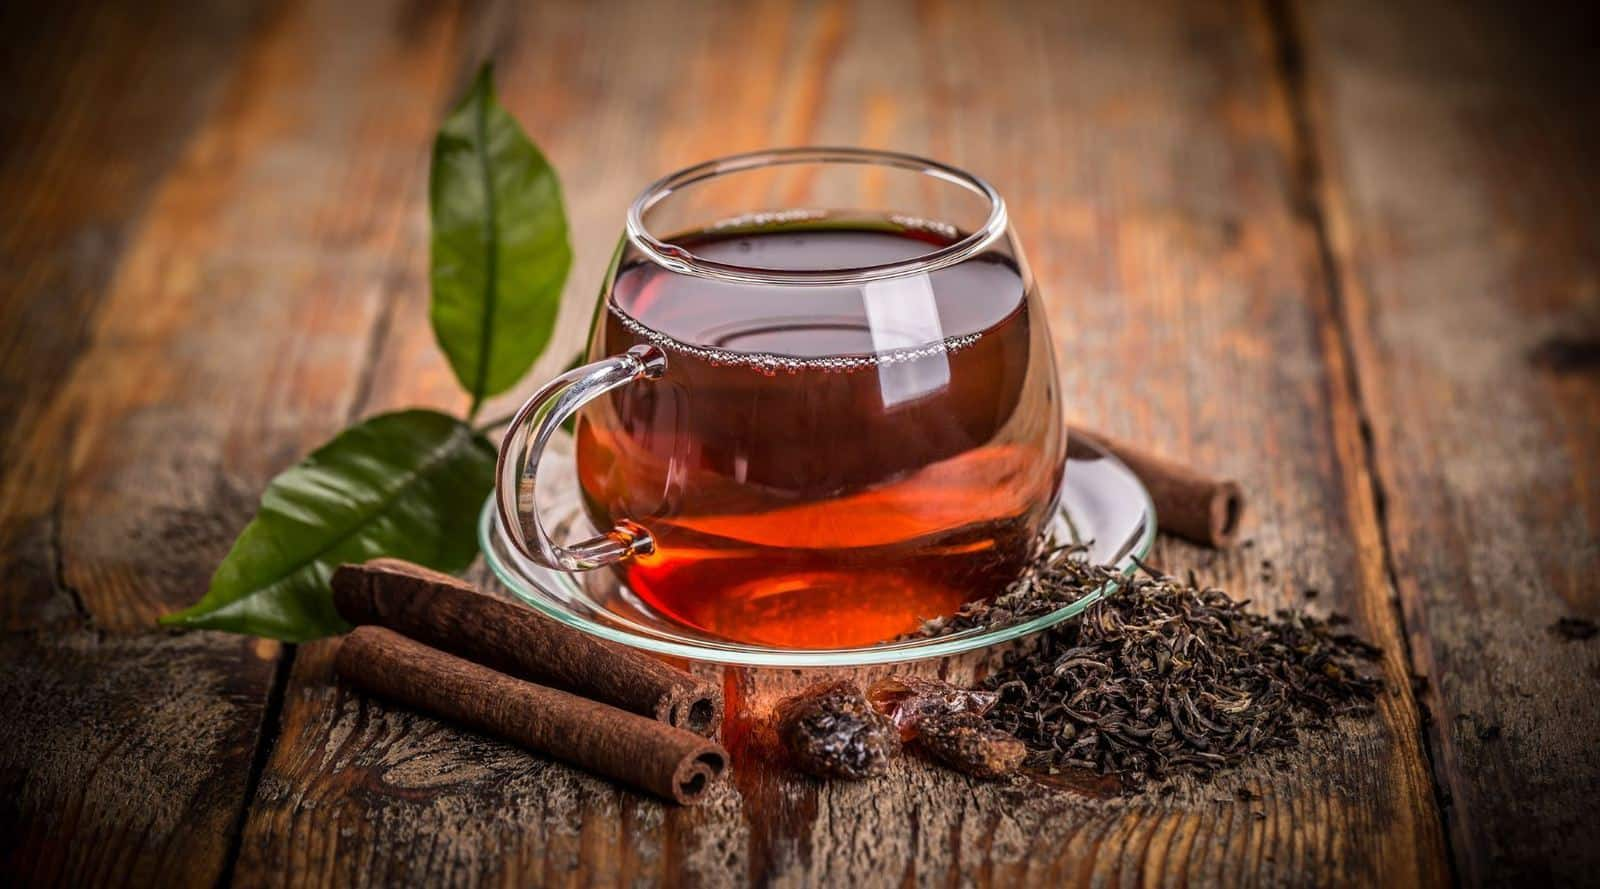 tannin in tea: what is it? is it good or bad?